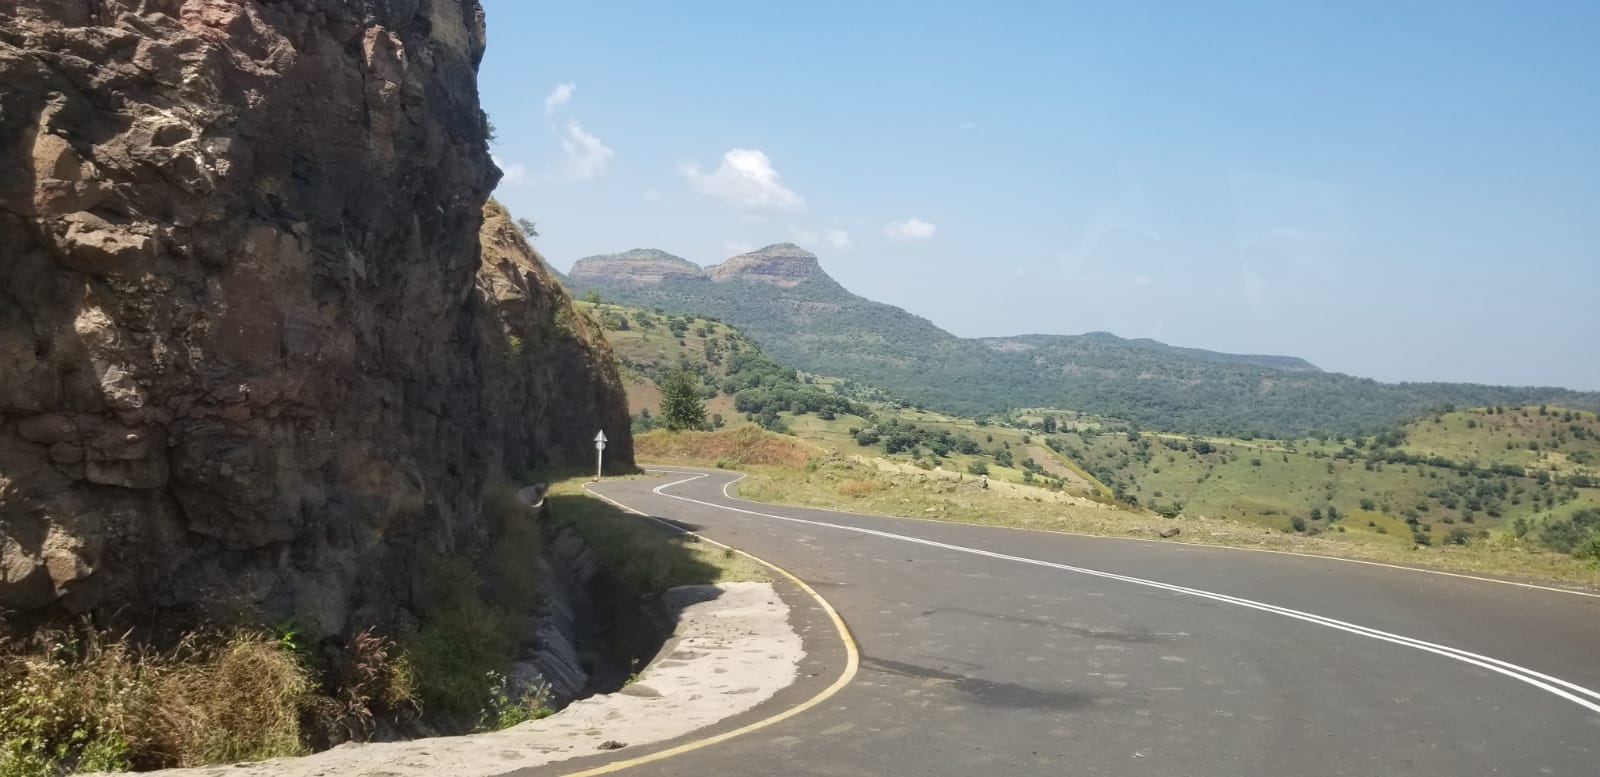 WhatsApp_Image_2020-05-18_at_12.26.18_5.jpeg